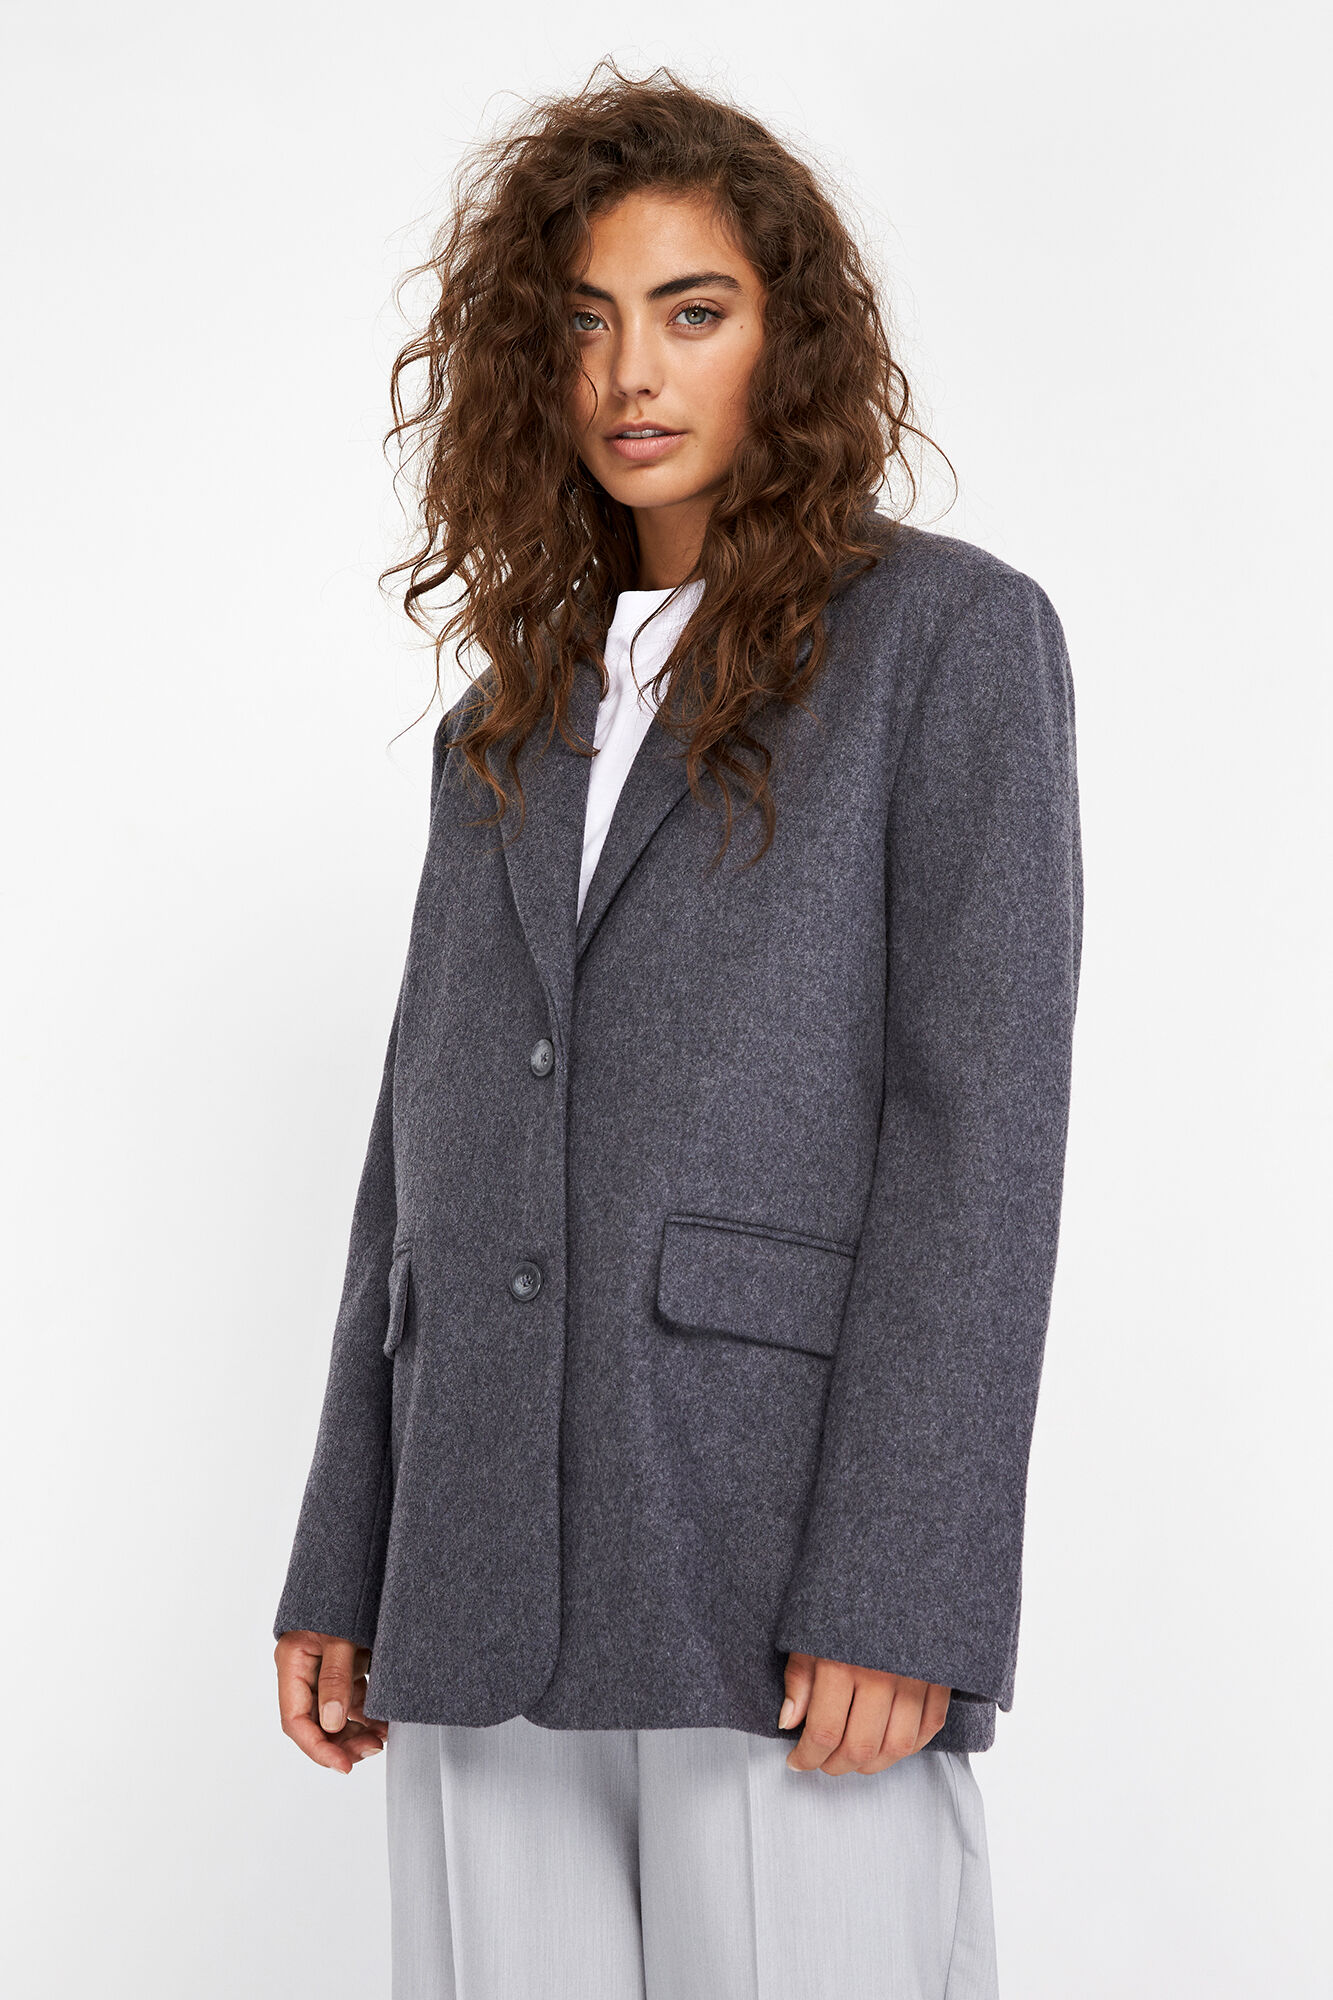 ENCOVENT JACKET 6649